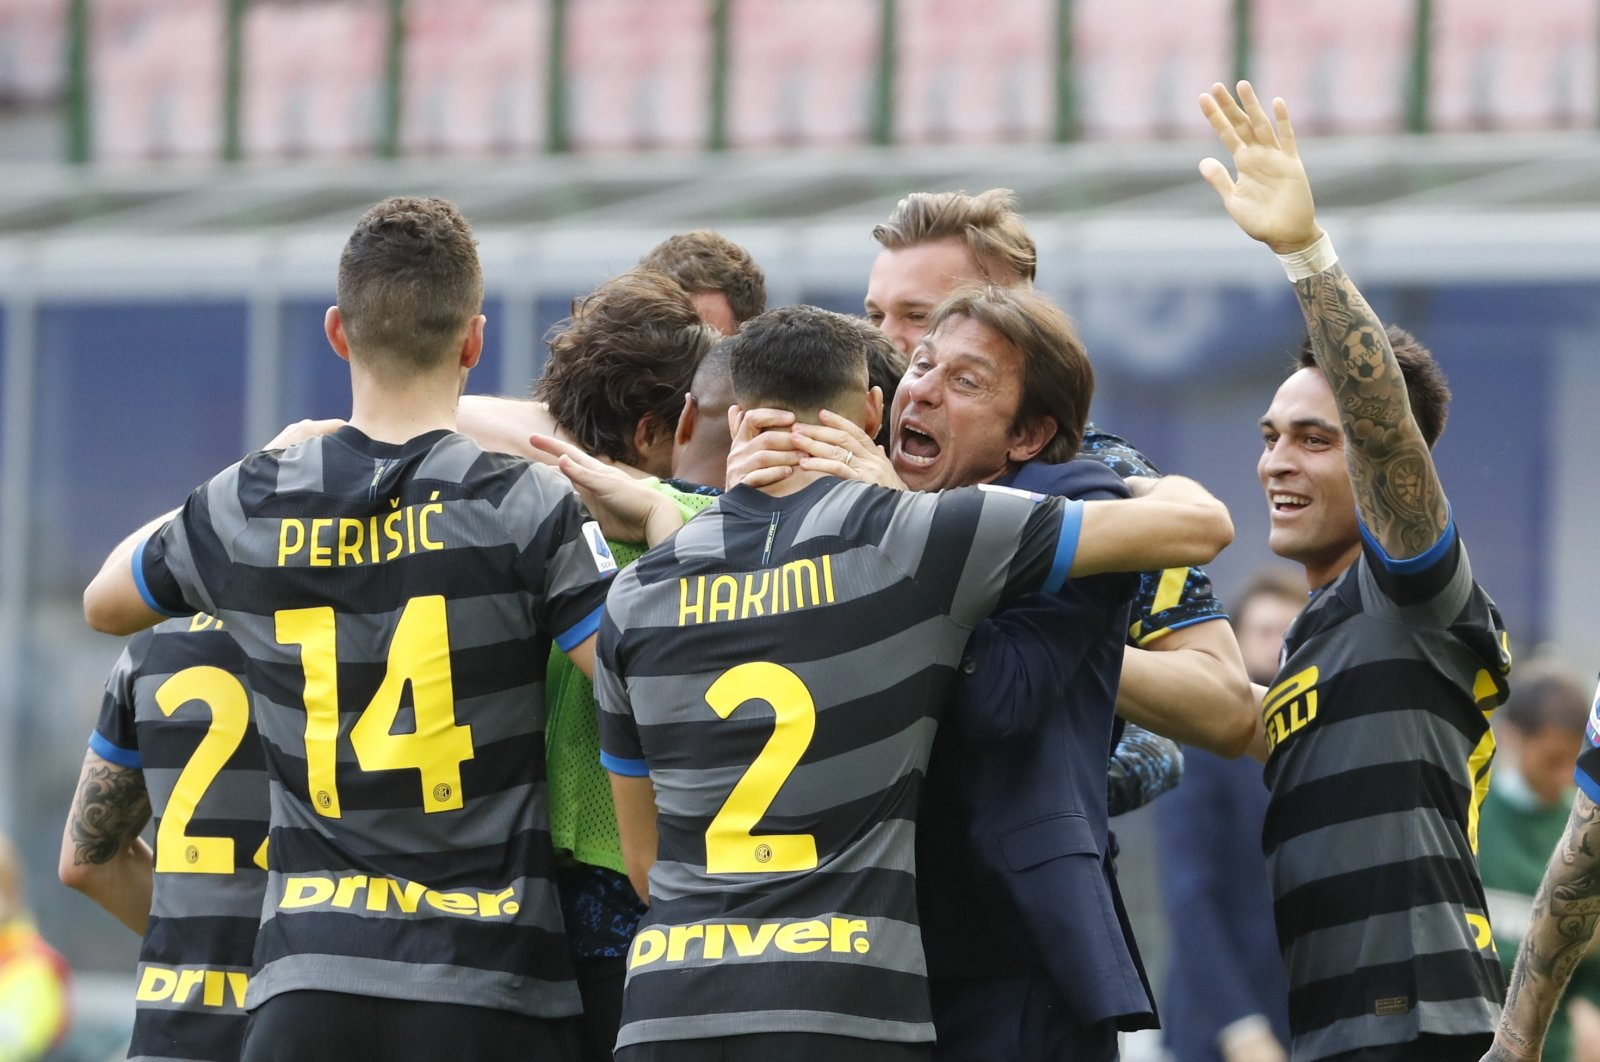 Inter Milan head coach Antonio Conte and players celebrate after Matteo Darmian scored during a Serie A match against Hellas Verona, at the San Siro, Milan, Italy, April 25, 2021. (AP Photo)